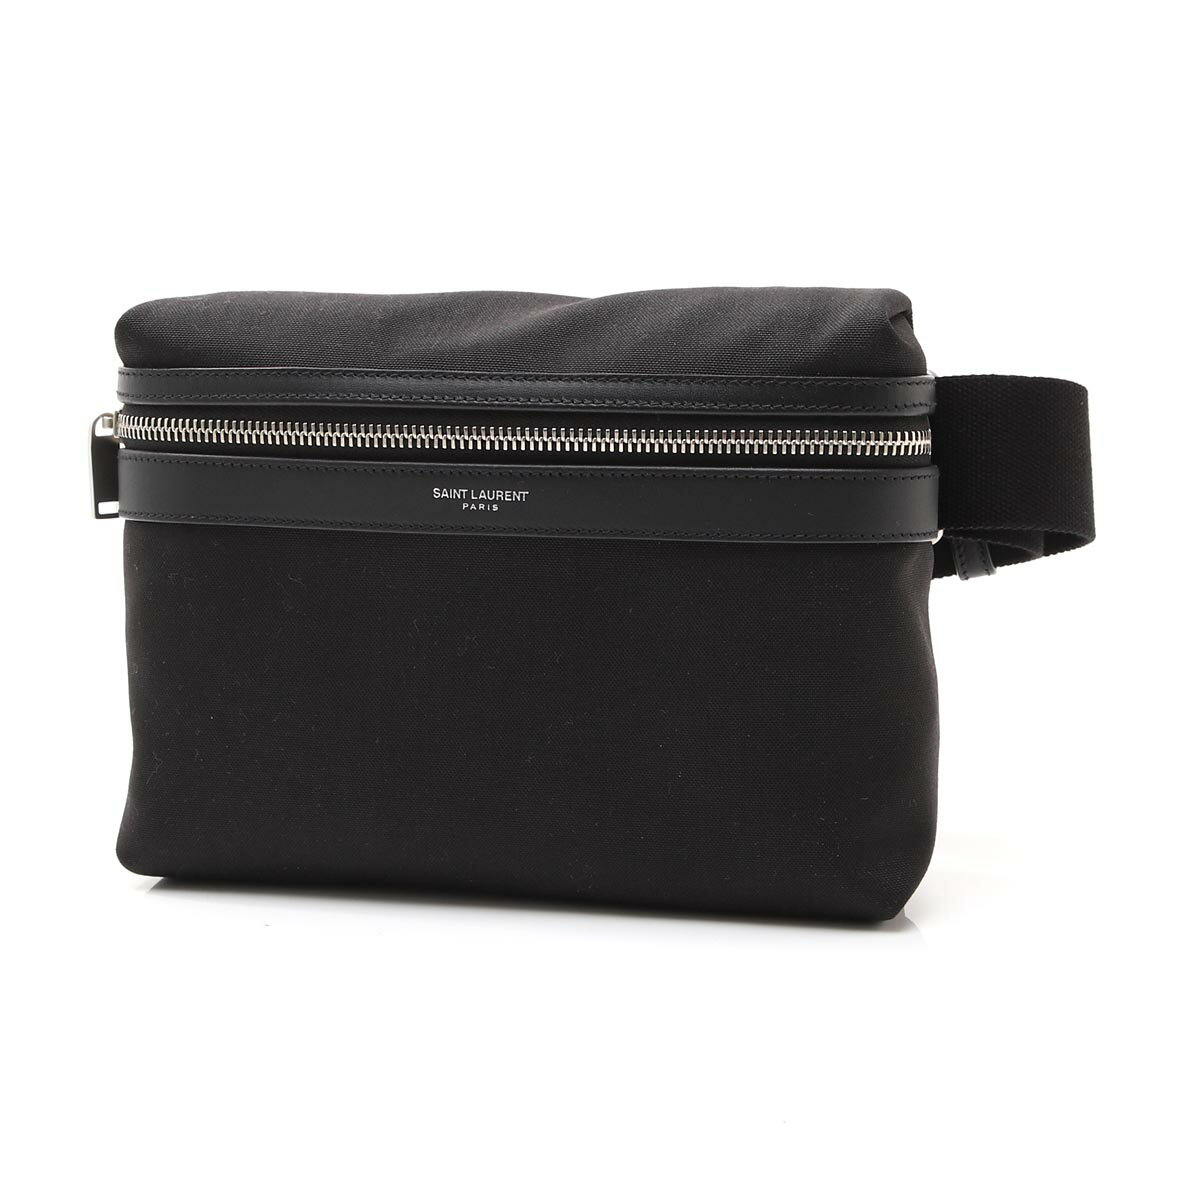 メンズバッグ, ボディバッグ・ウエストポーチ  SAINT LAURENT PARIS 634717 givlf 1000 CITY CAMERA BAG IN SAINT LAURENT CANVAS